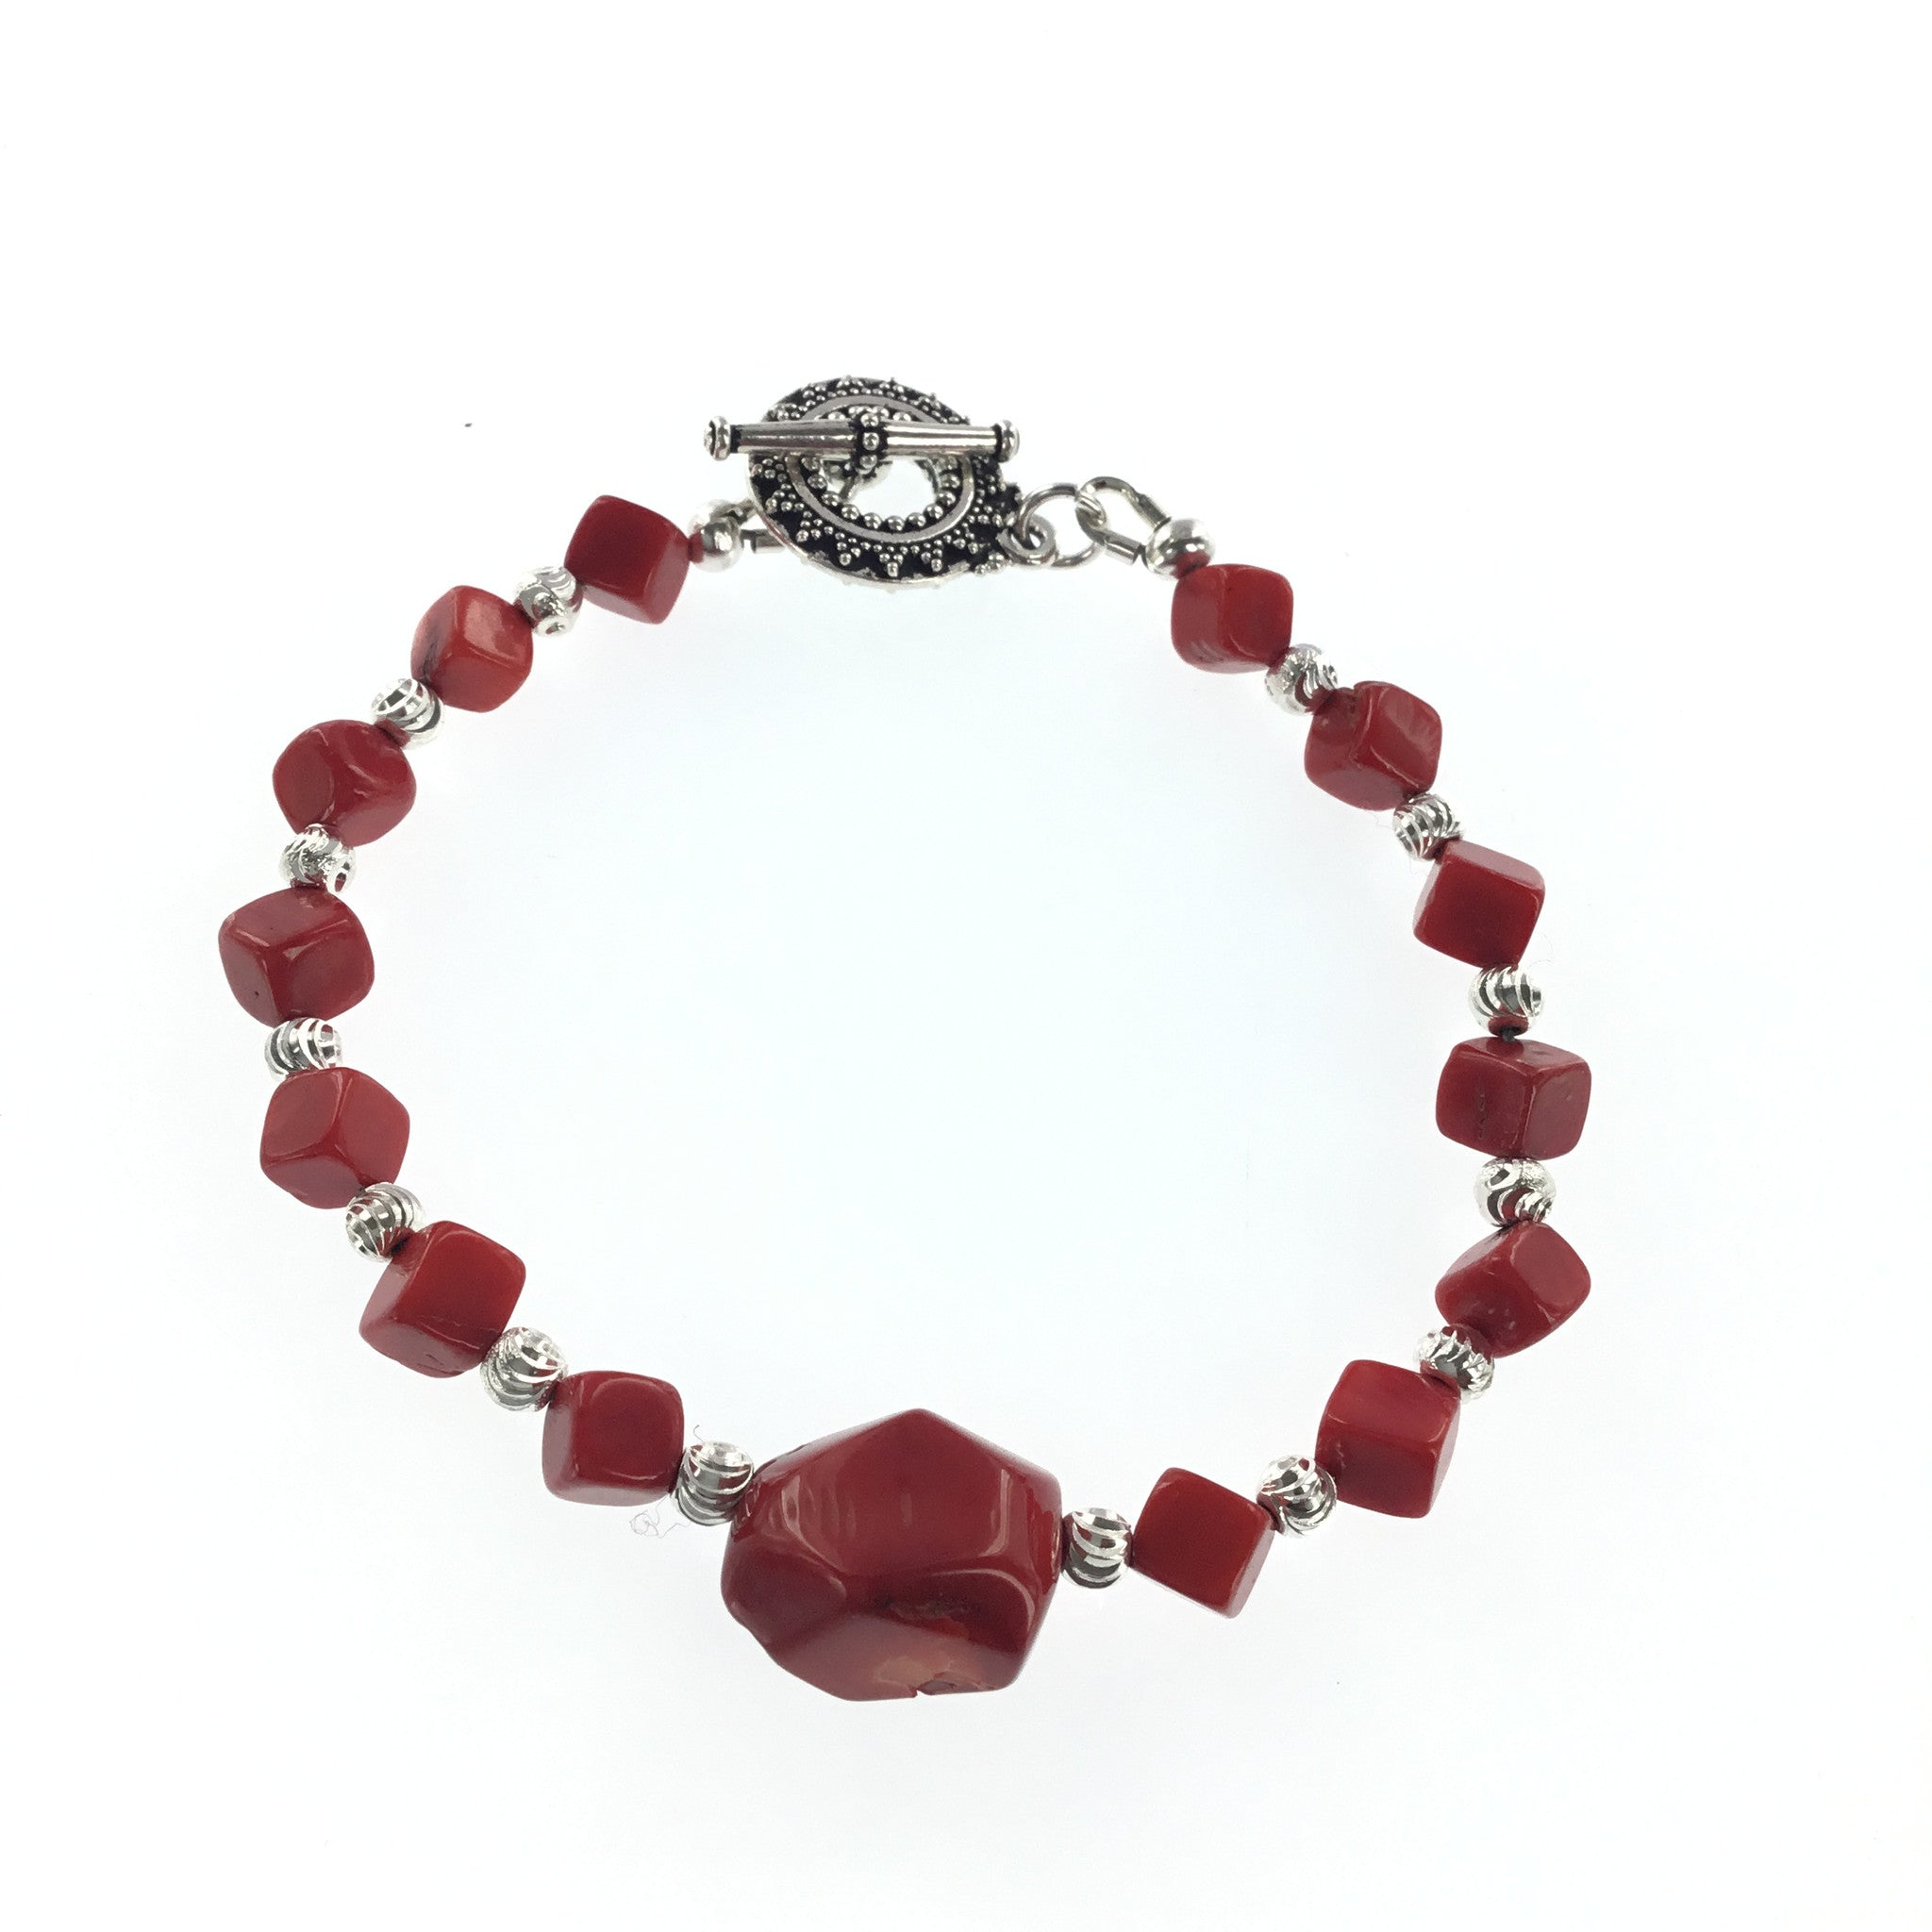 Red Coral and Silver Bracelet - Real Chic Boutique  - 4